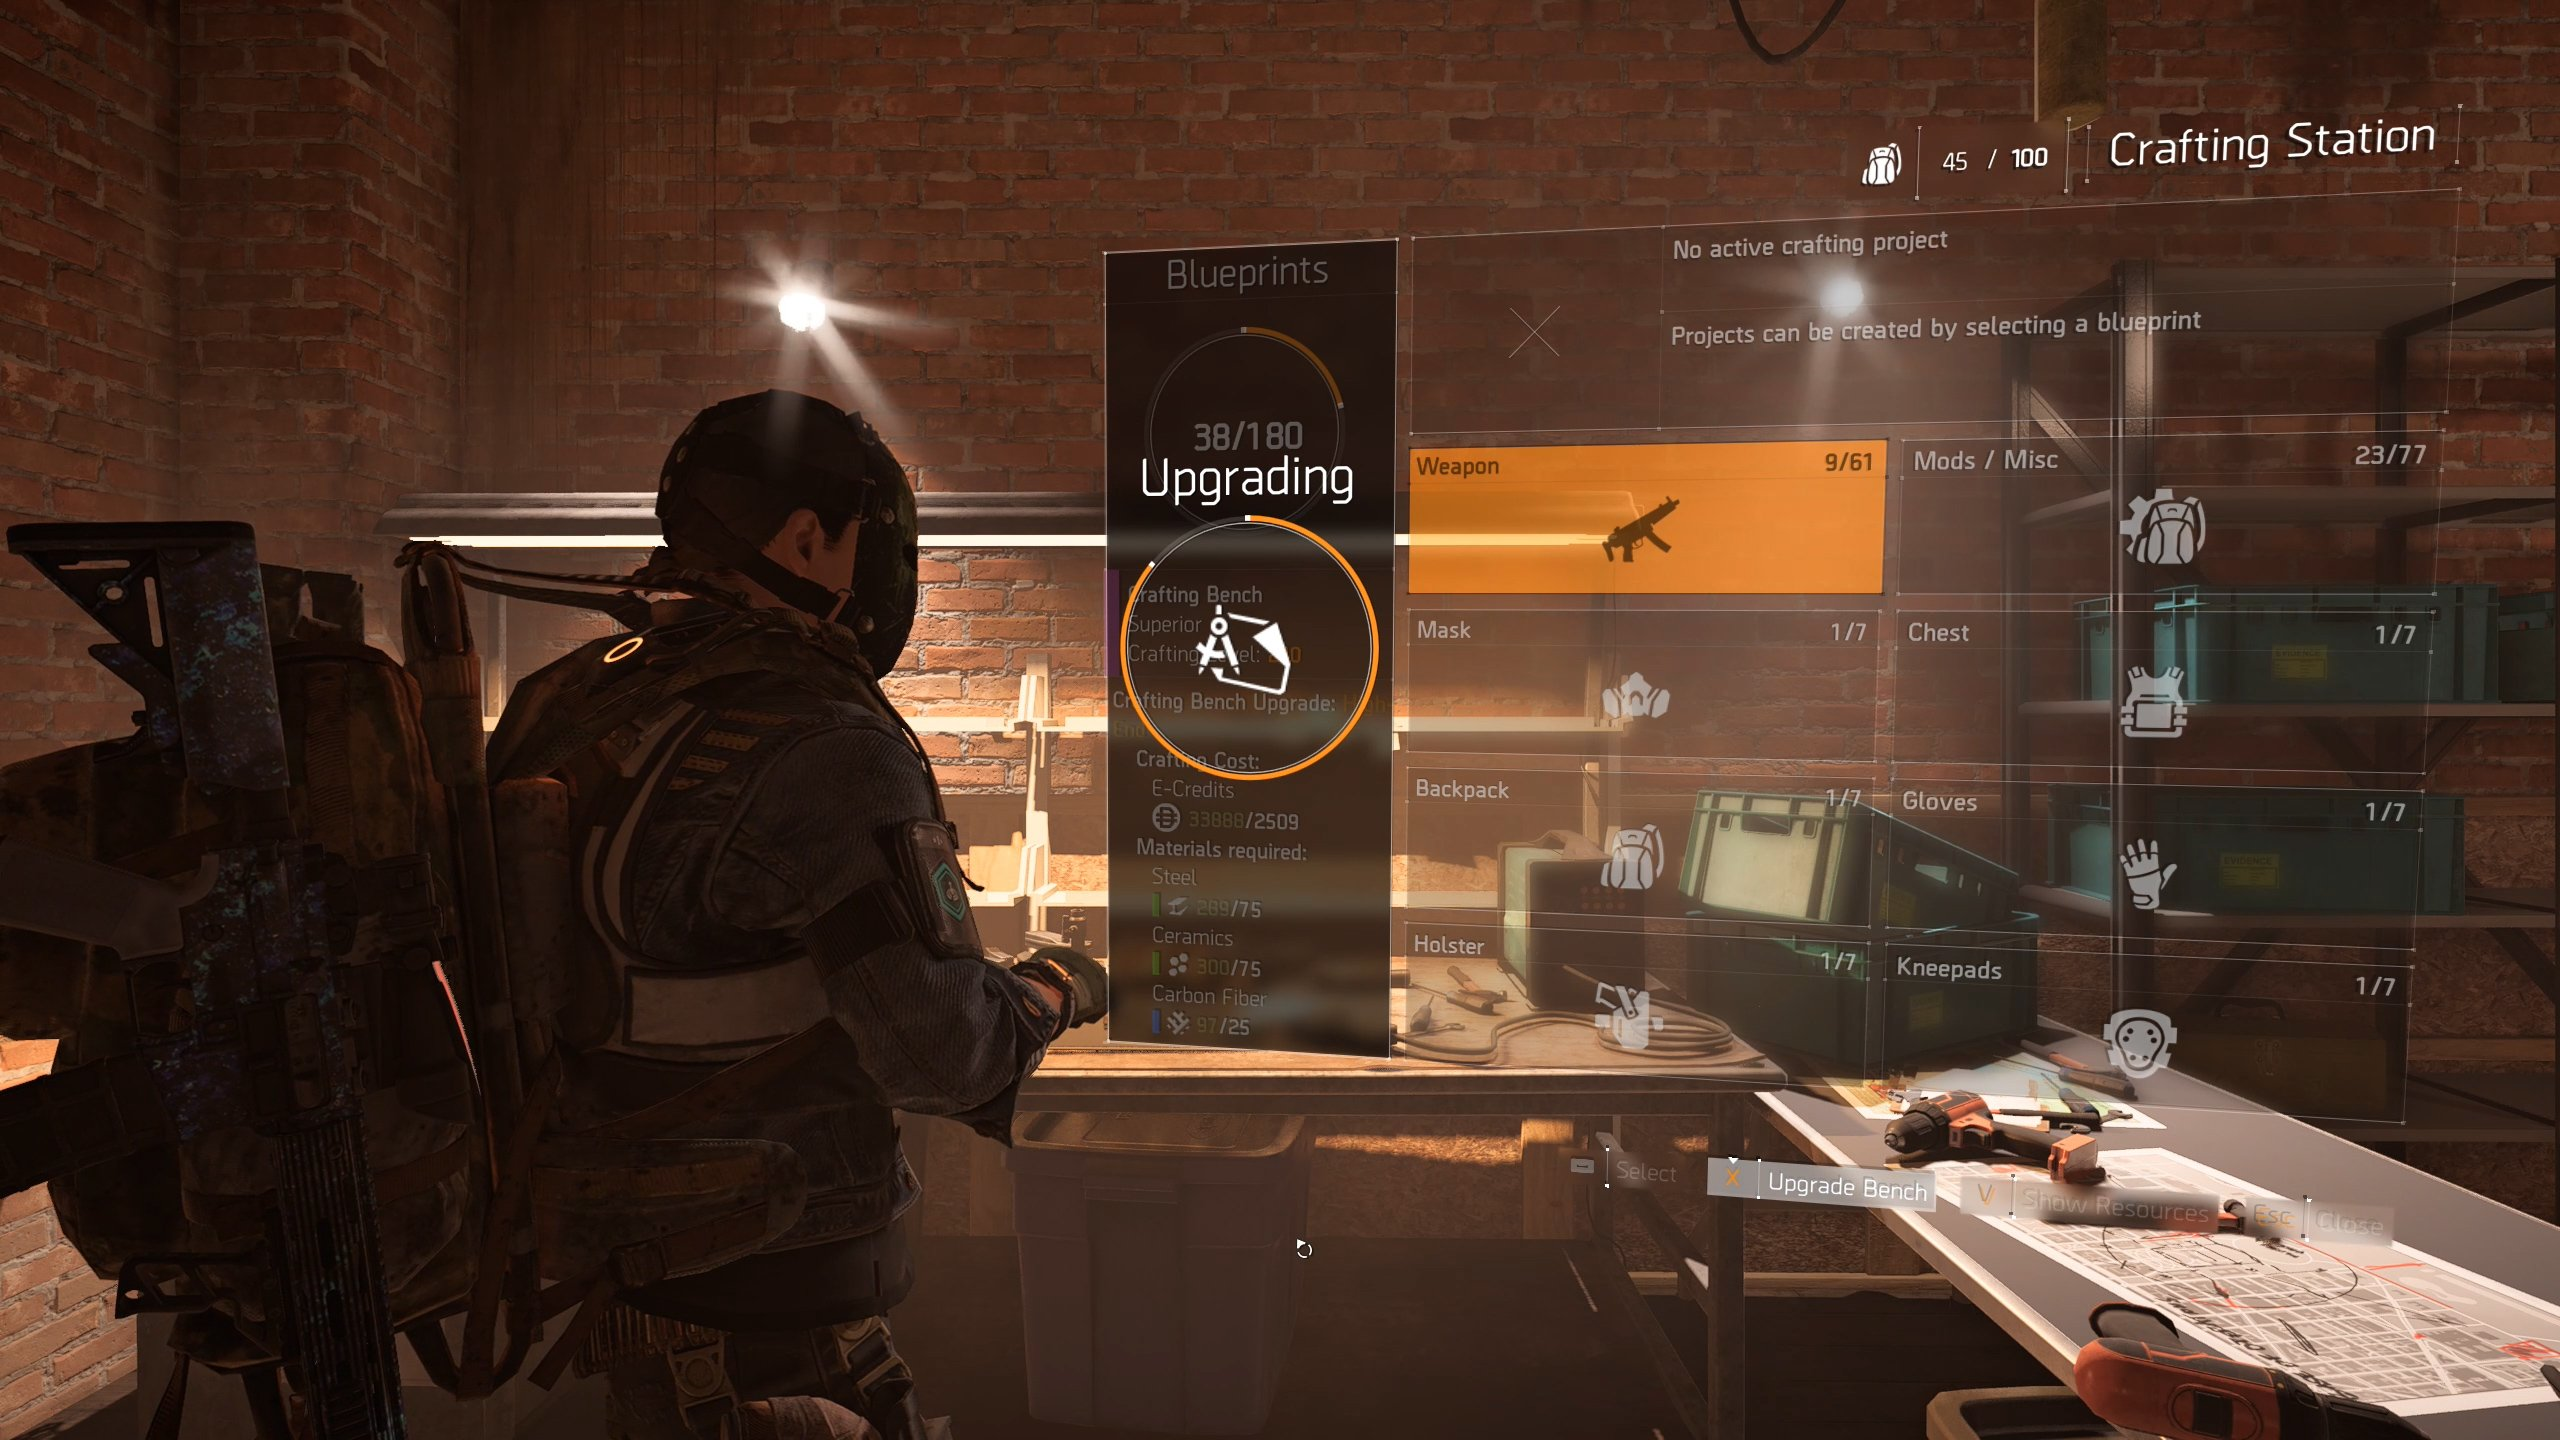 How to upgrade the Crafting Station in The Division 2